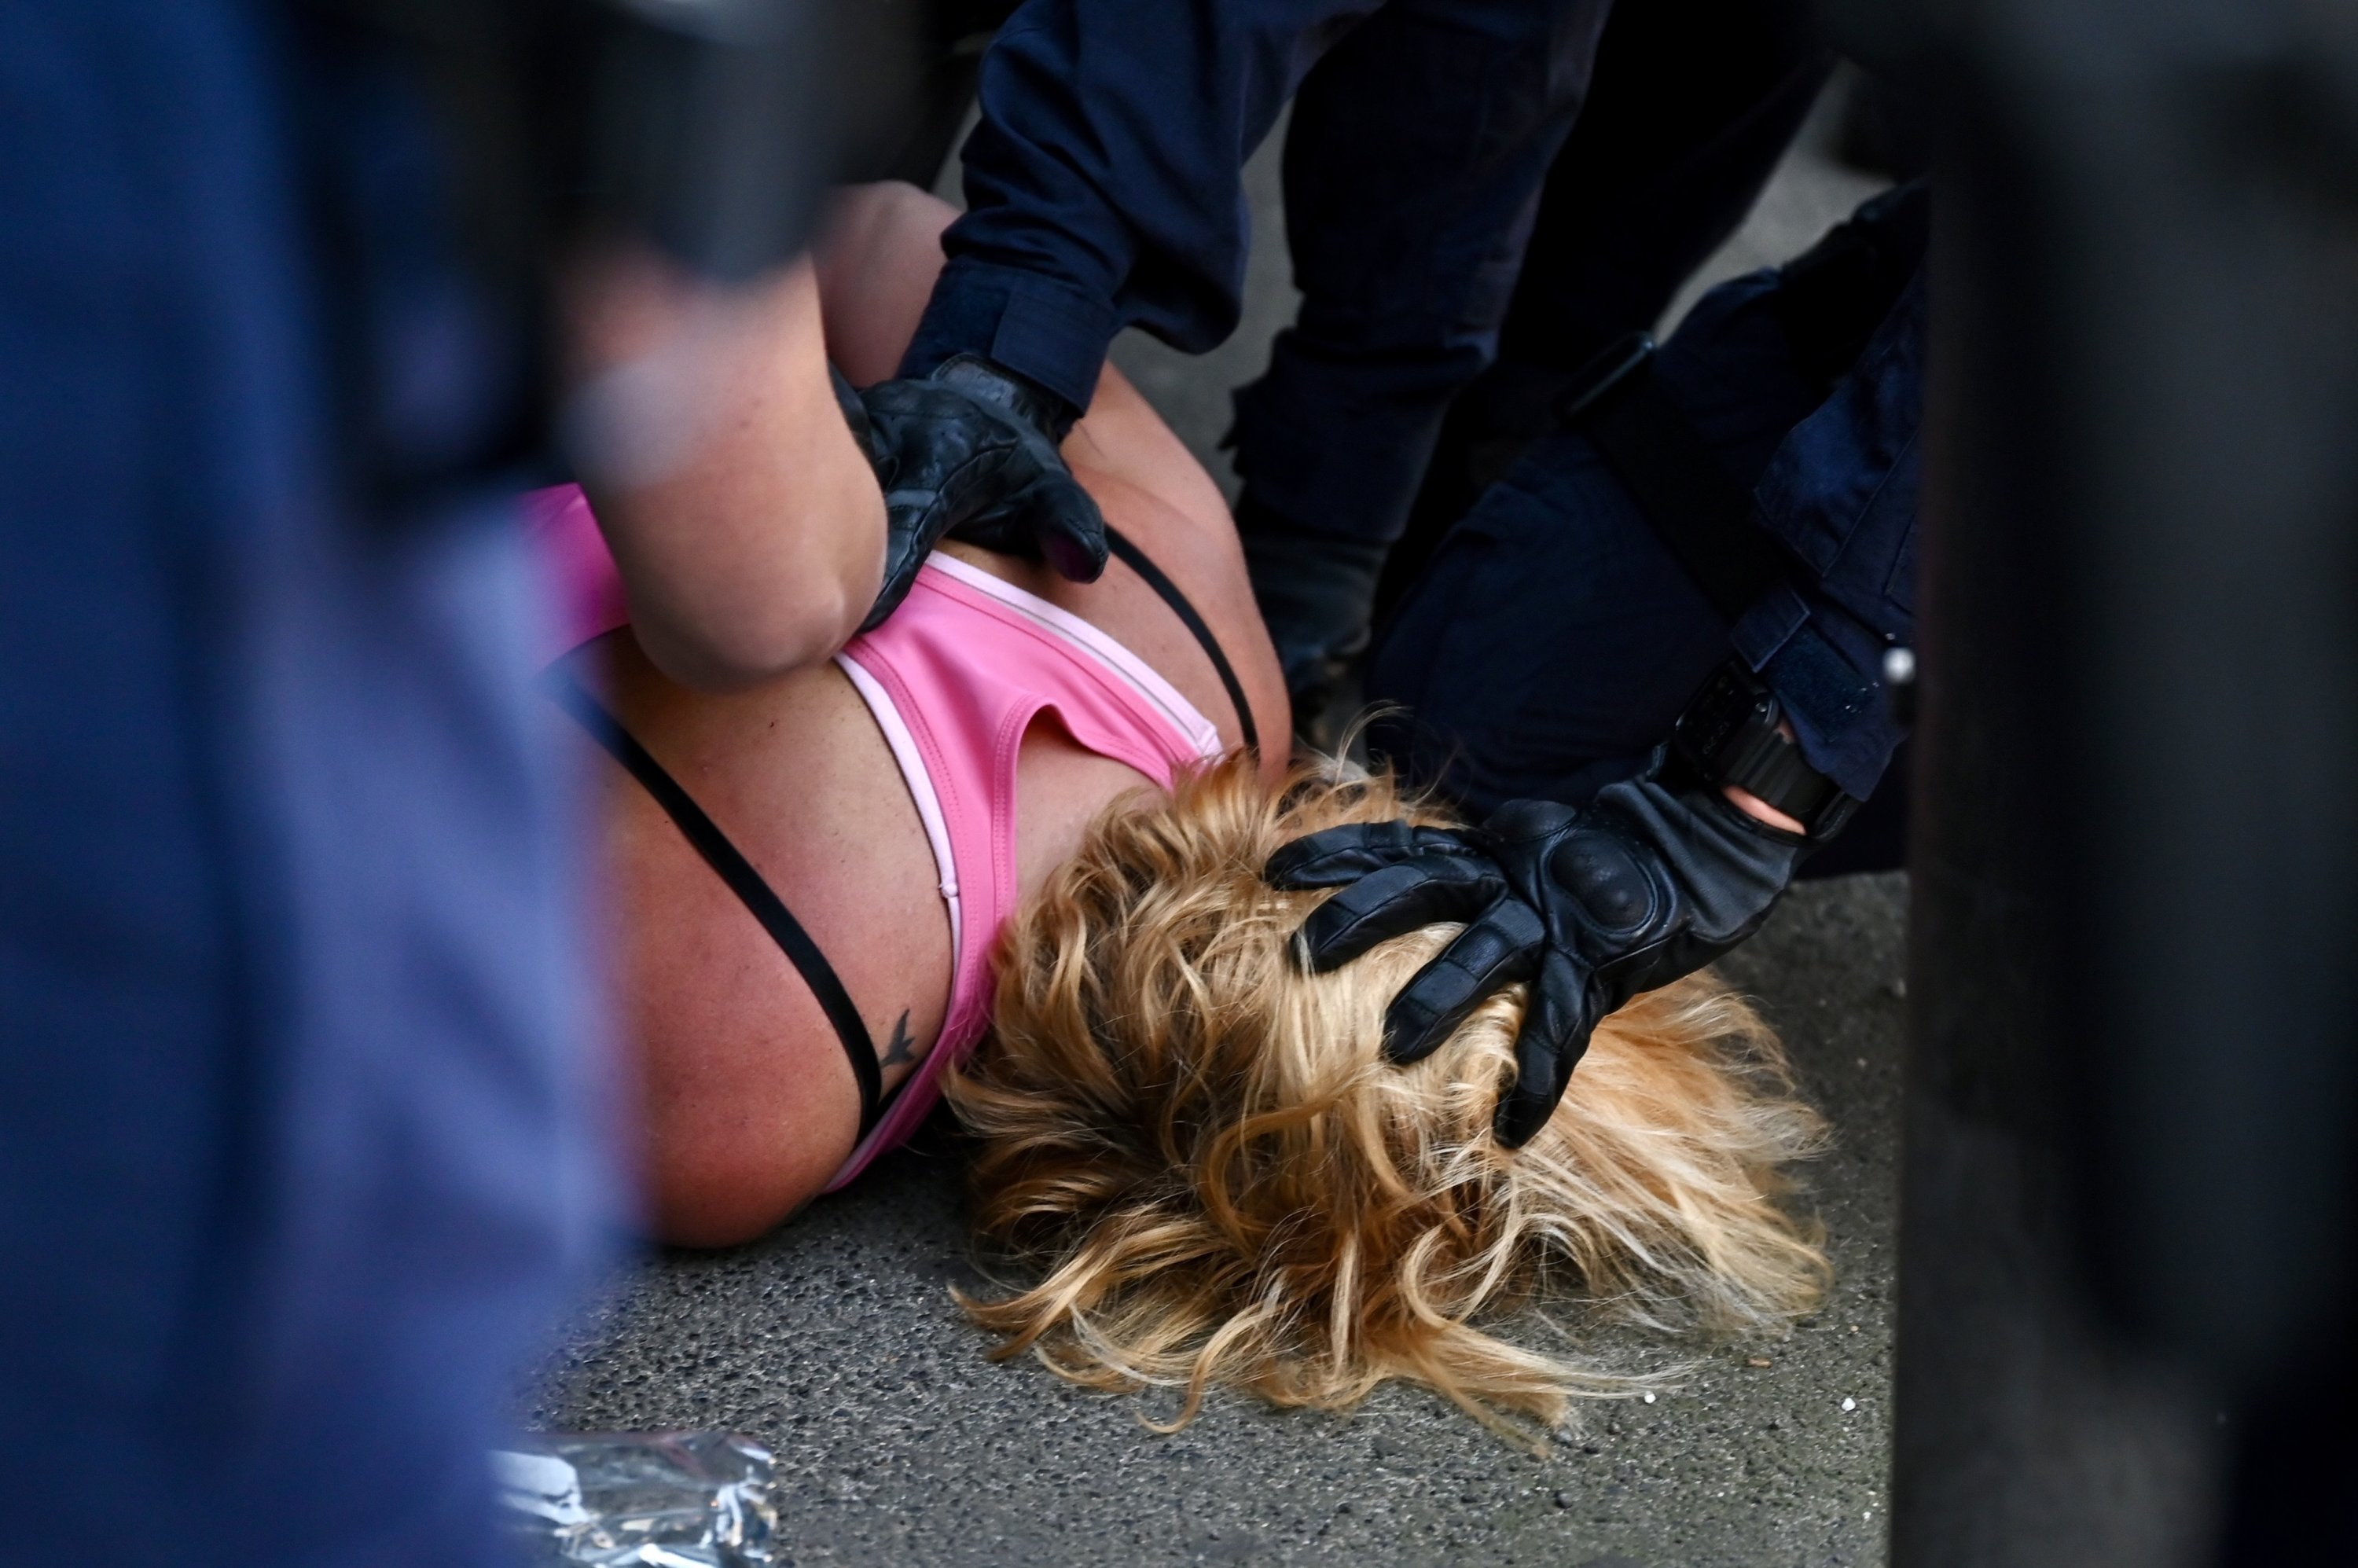 A protester is arrested by police during the 'National Rally for Peace, Freedom and Human Rights' anti-lockdown protest in Sydney, Australia, Aug. 21, 2021. (EPA Photo)